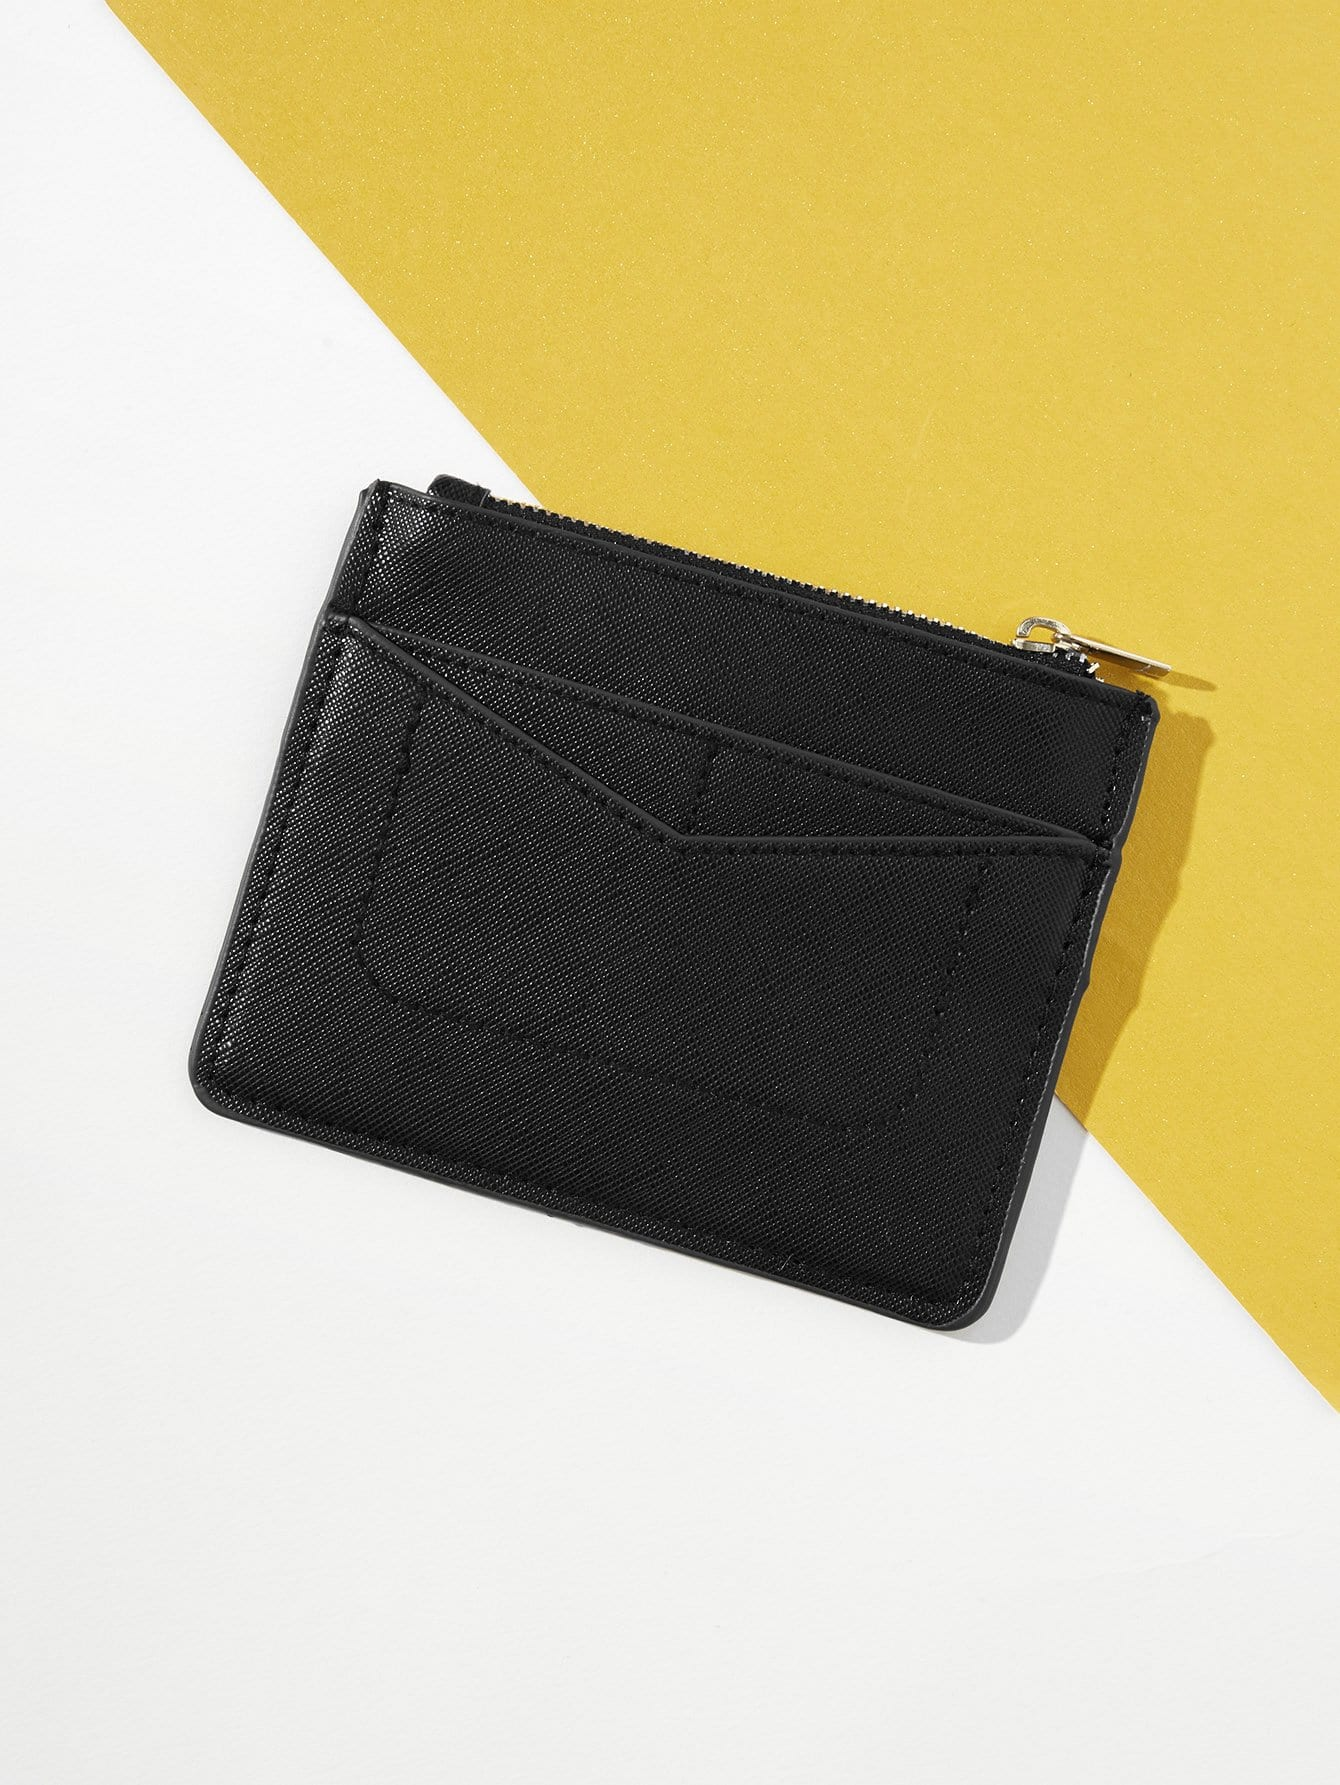 cat 2154 Wallet PU p 492290 Card html xnFnWwIR